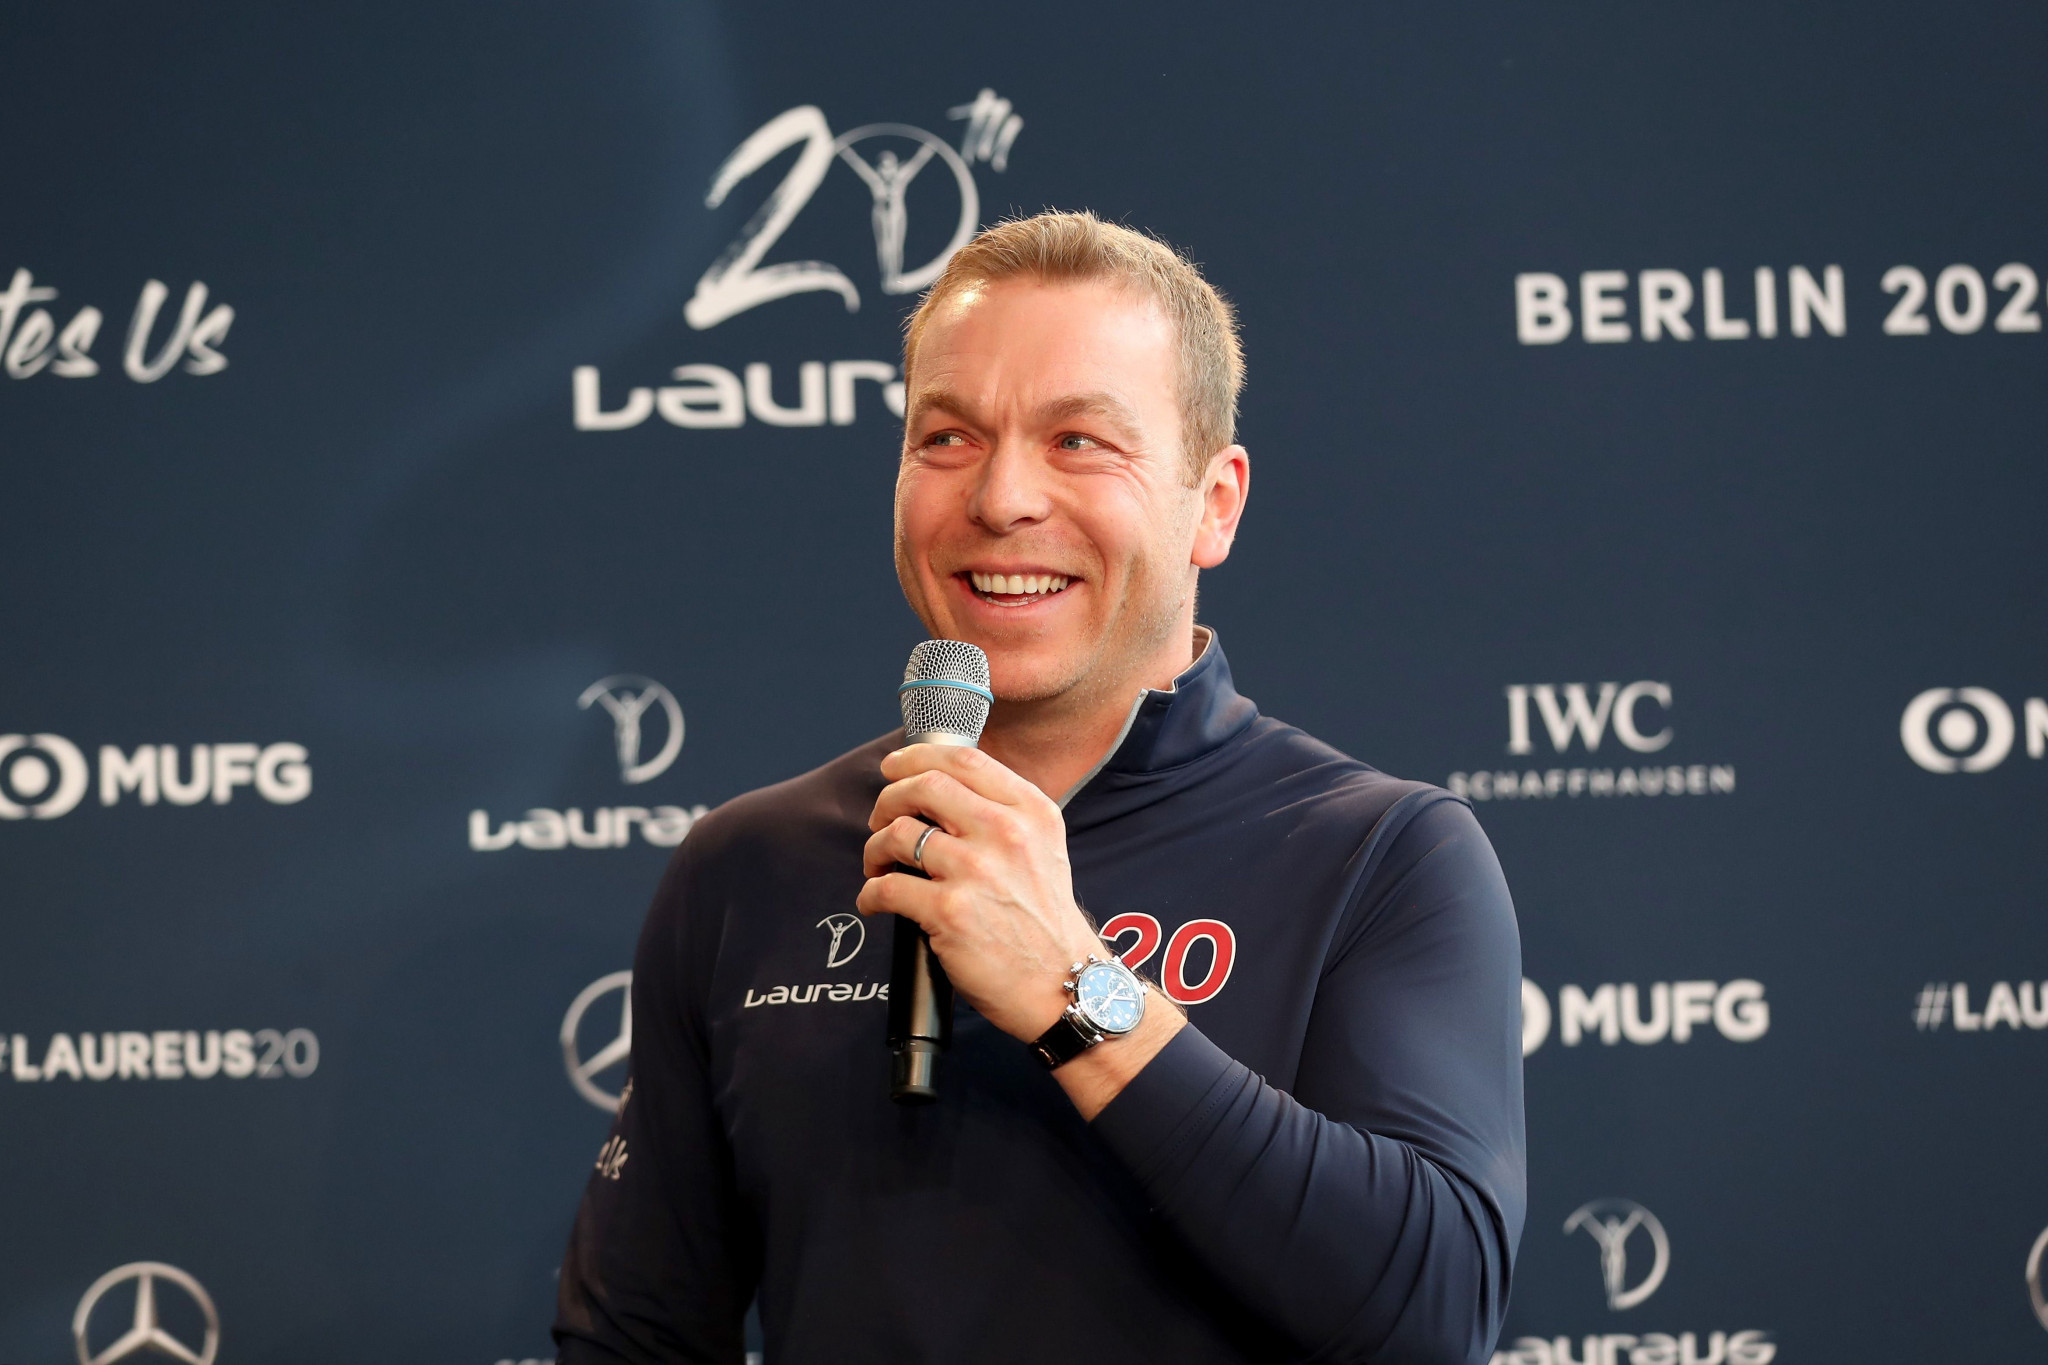 Could respected figures such as Sir Chris Hoy be drafted in to address some of British sport's systemic failings? ©Getty Images